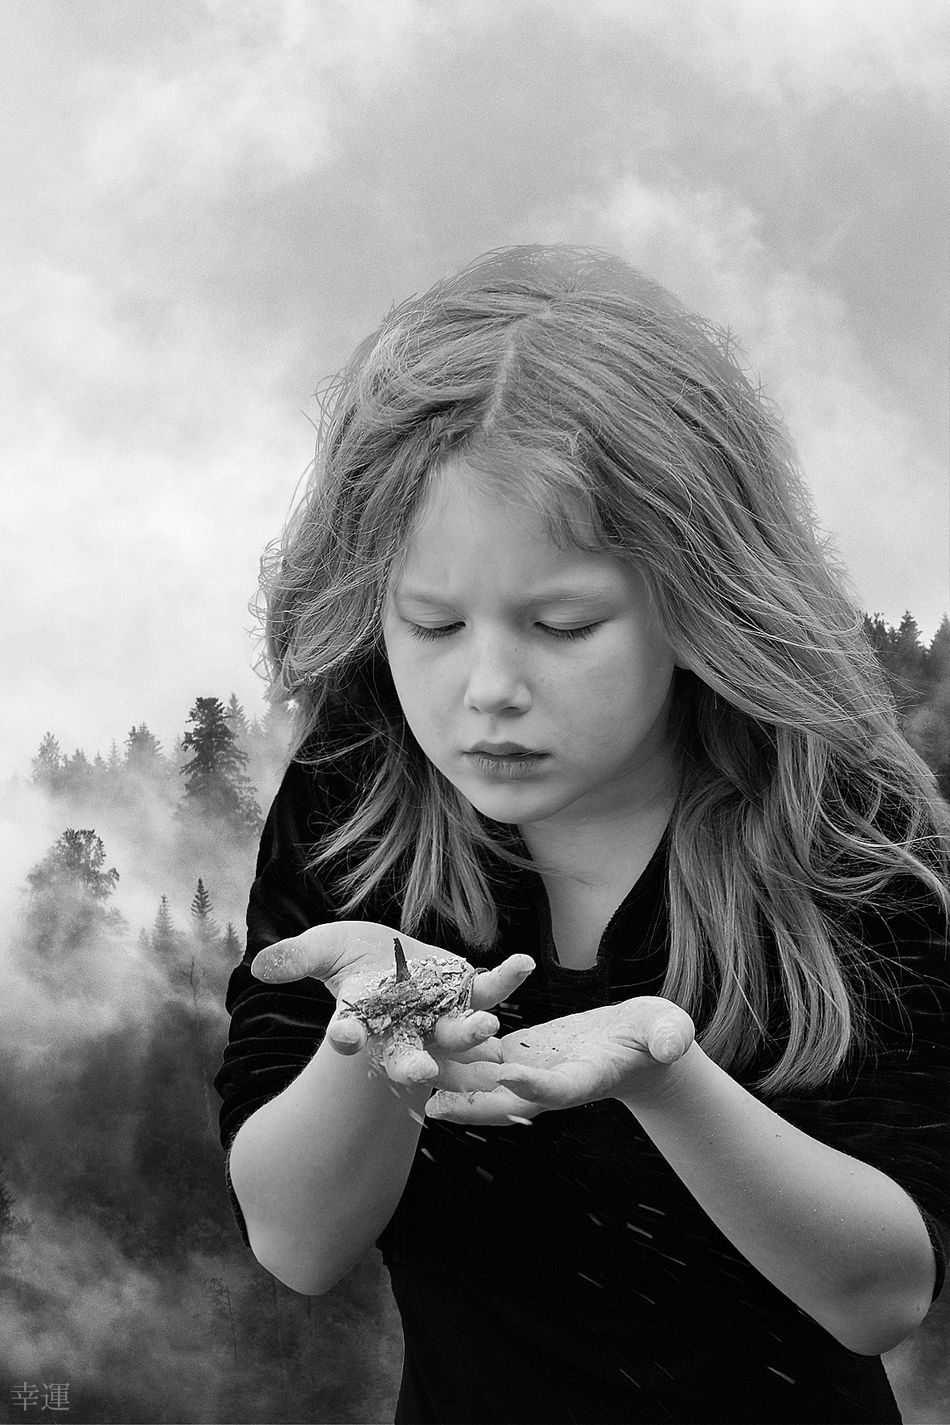 ashes to ashes, dust to dust ( final version ) Portrait Child Girl Close-up Melancholy Sadness Sorrow Mood Lucky's Mood Lucky's Monochrome Monochrome Monoart Black And White Shootermag EyeEm Gallery ArtWork Fine Art Photomanipulation Contrast Detail Shades Of Grey Tranquility Silence EyeEm Dust In The Wind